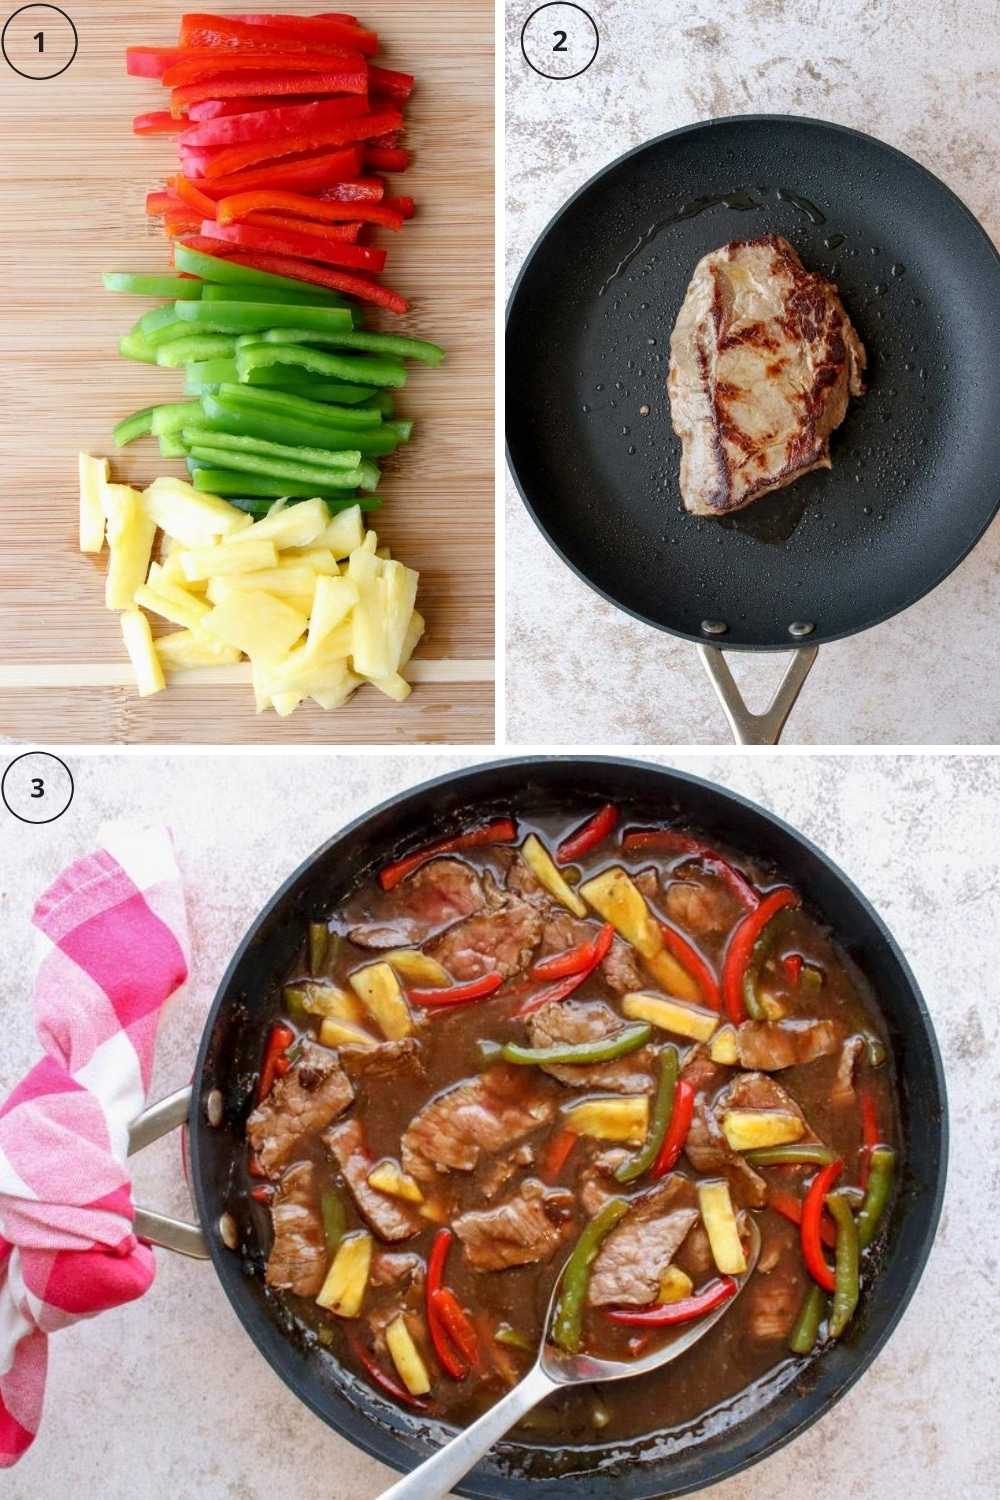 Photo of the 3 steps to make pepper steak